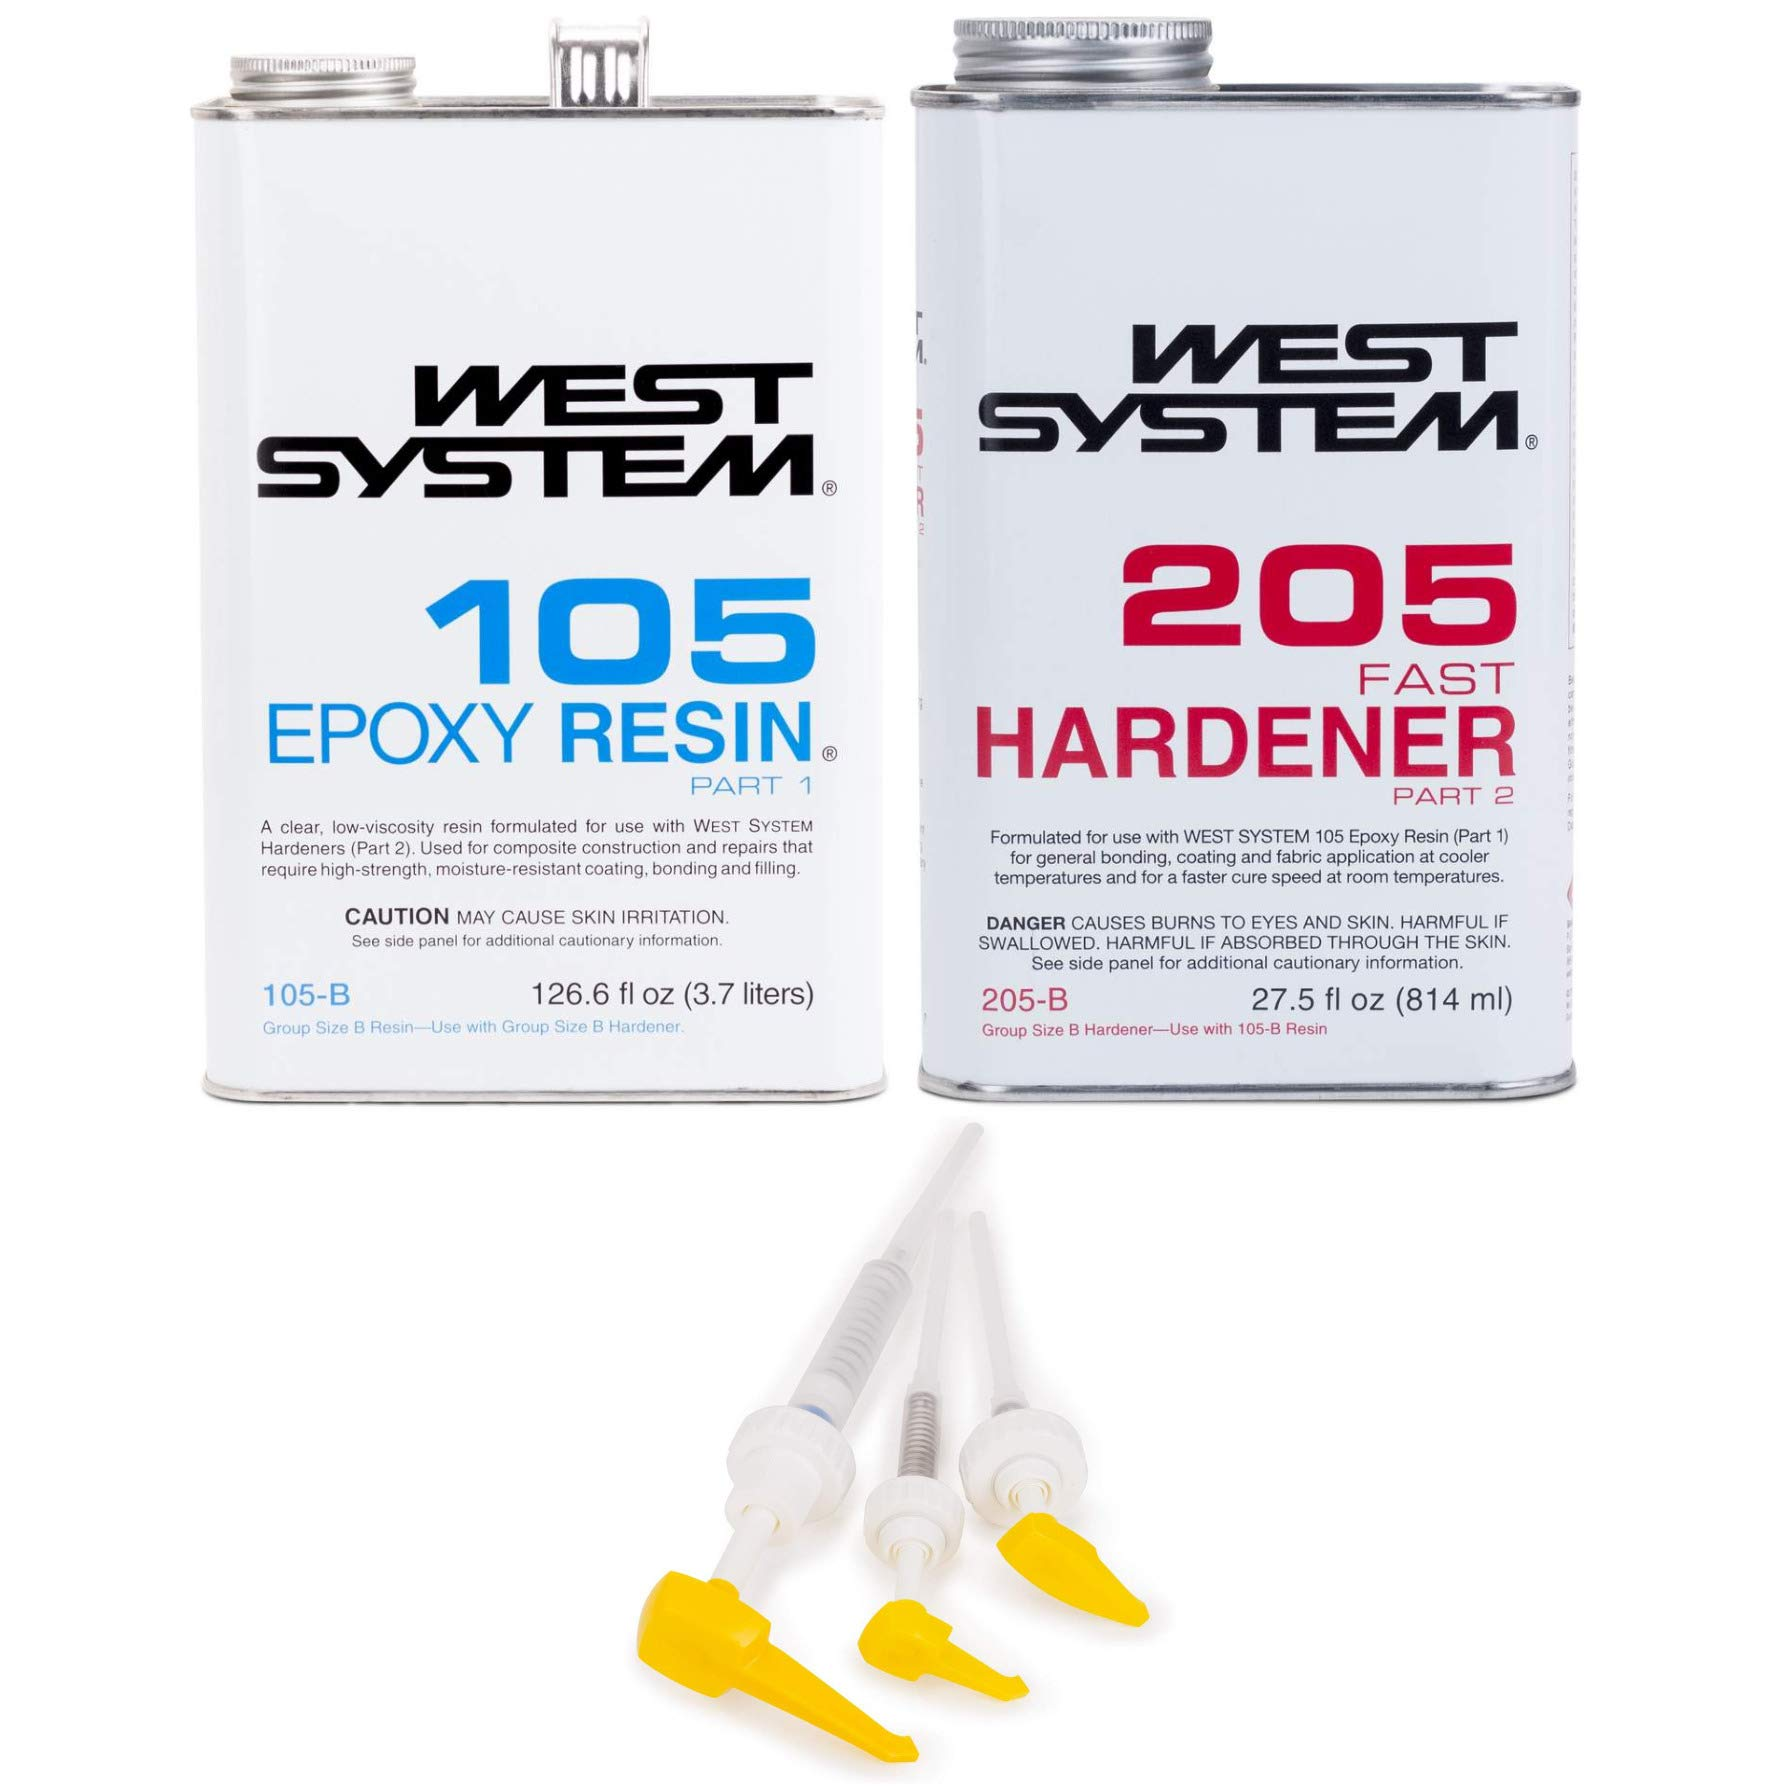 West System 105-B Epoxy Resin (.98 gal) with 205-B Fast Epoxy Hardener (.86 qt) and Mini Epoxy Metering Pump Set by WEST SYSTEM (Image #1)